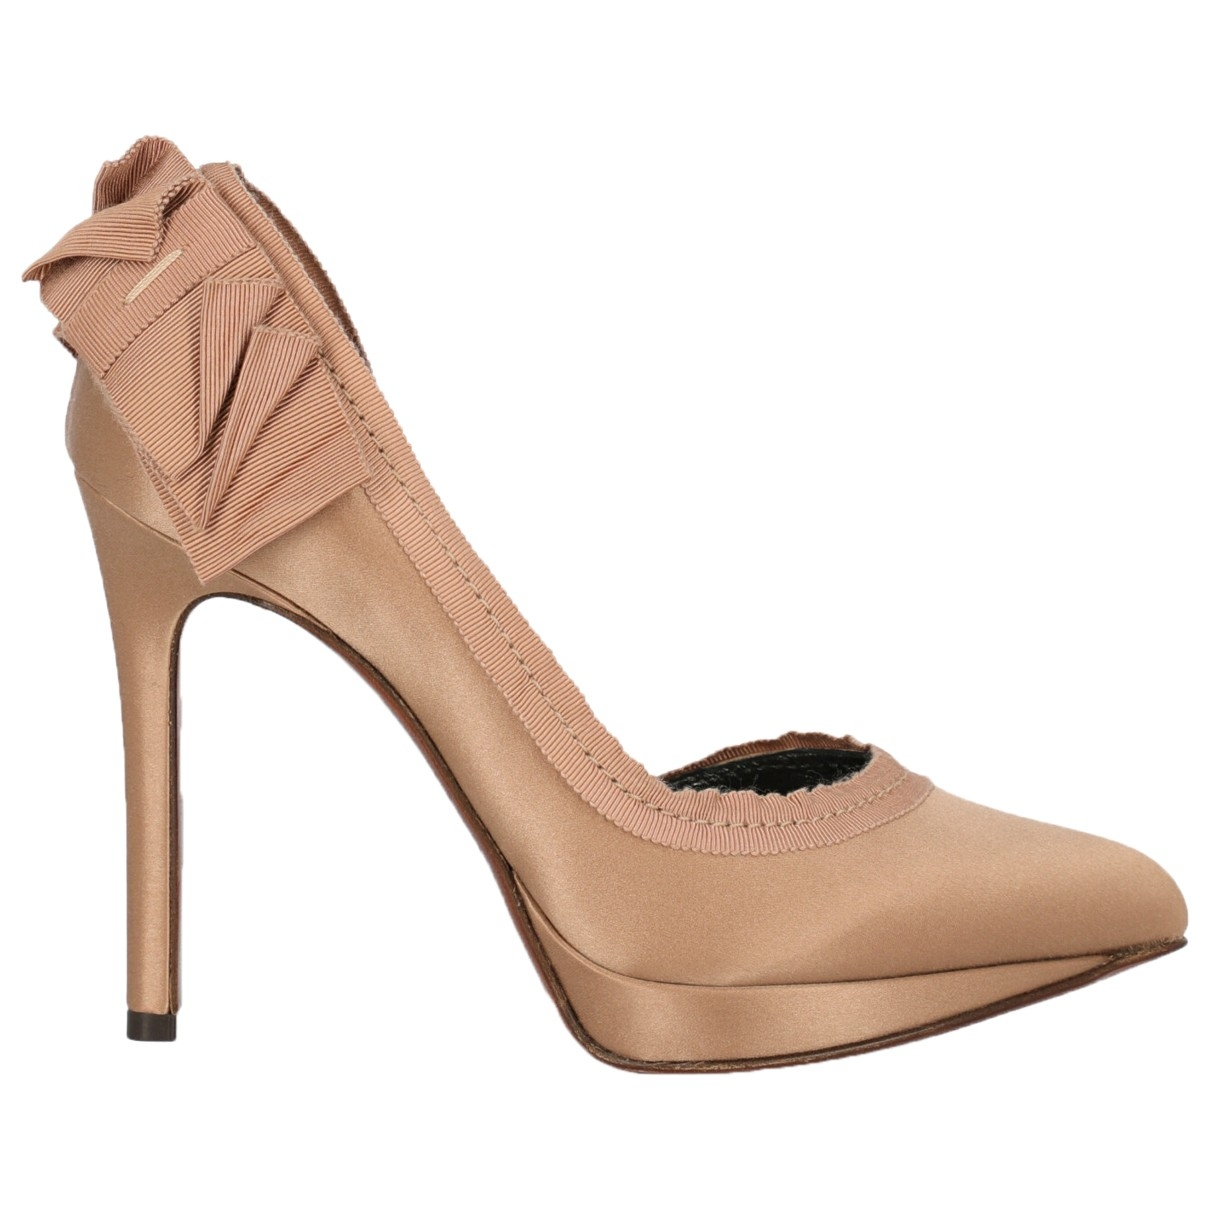 Lanvin \N Pink Cloth Heels for Women 35 IT